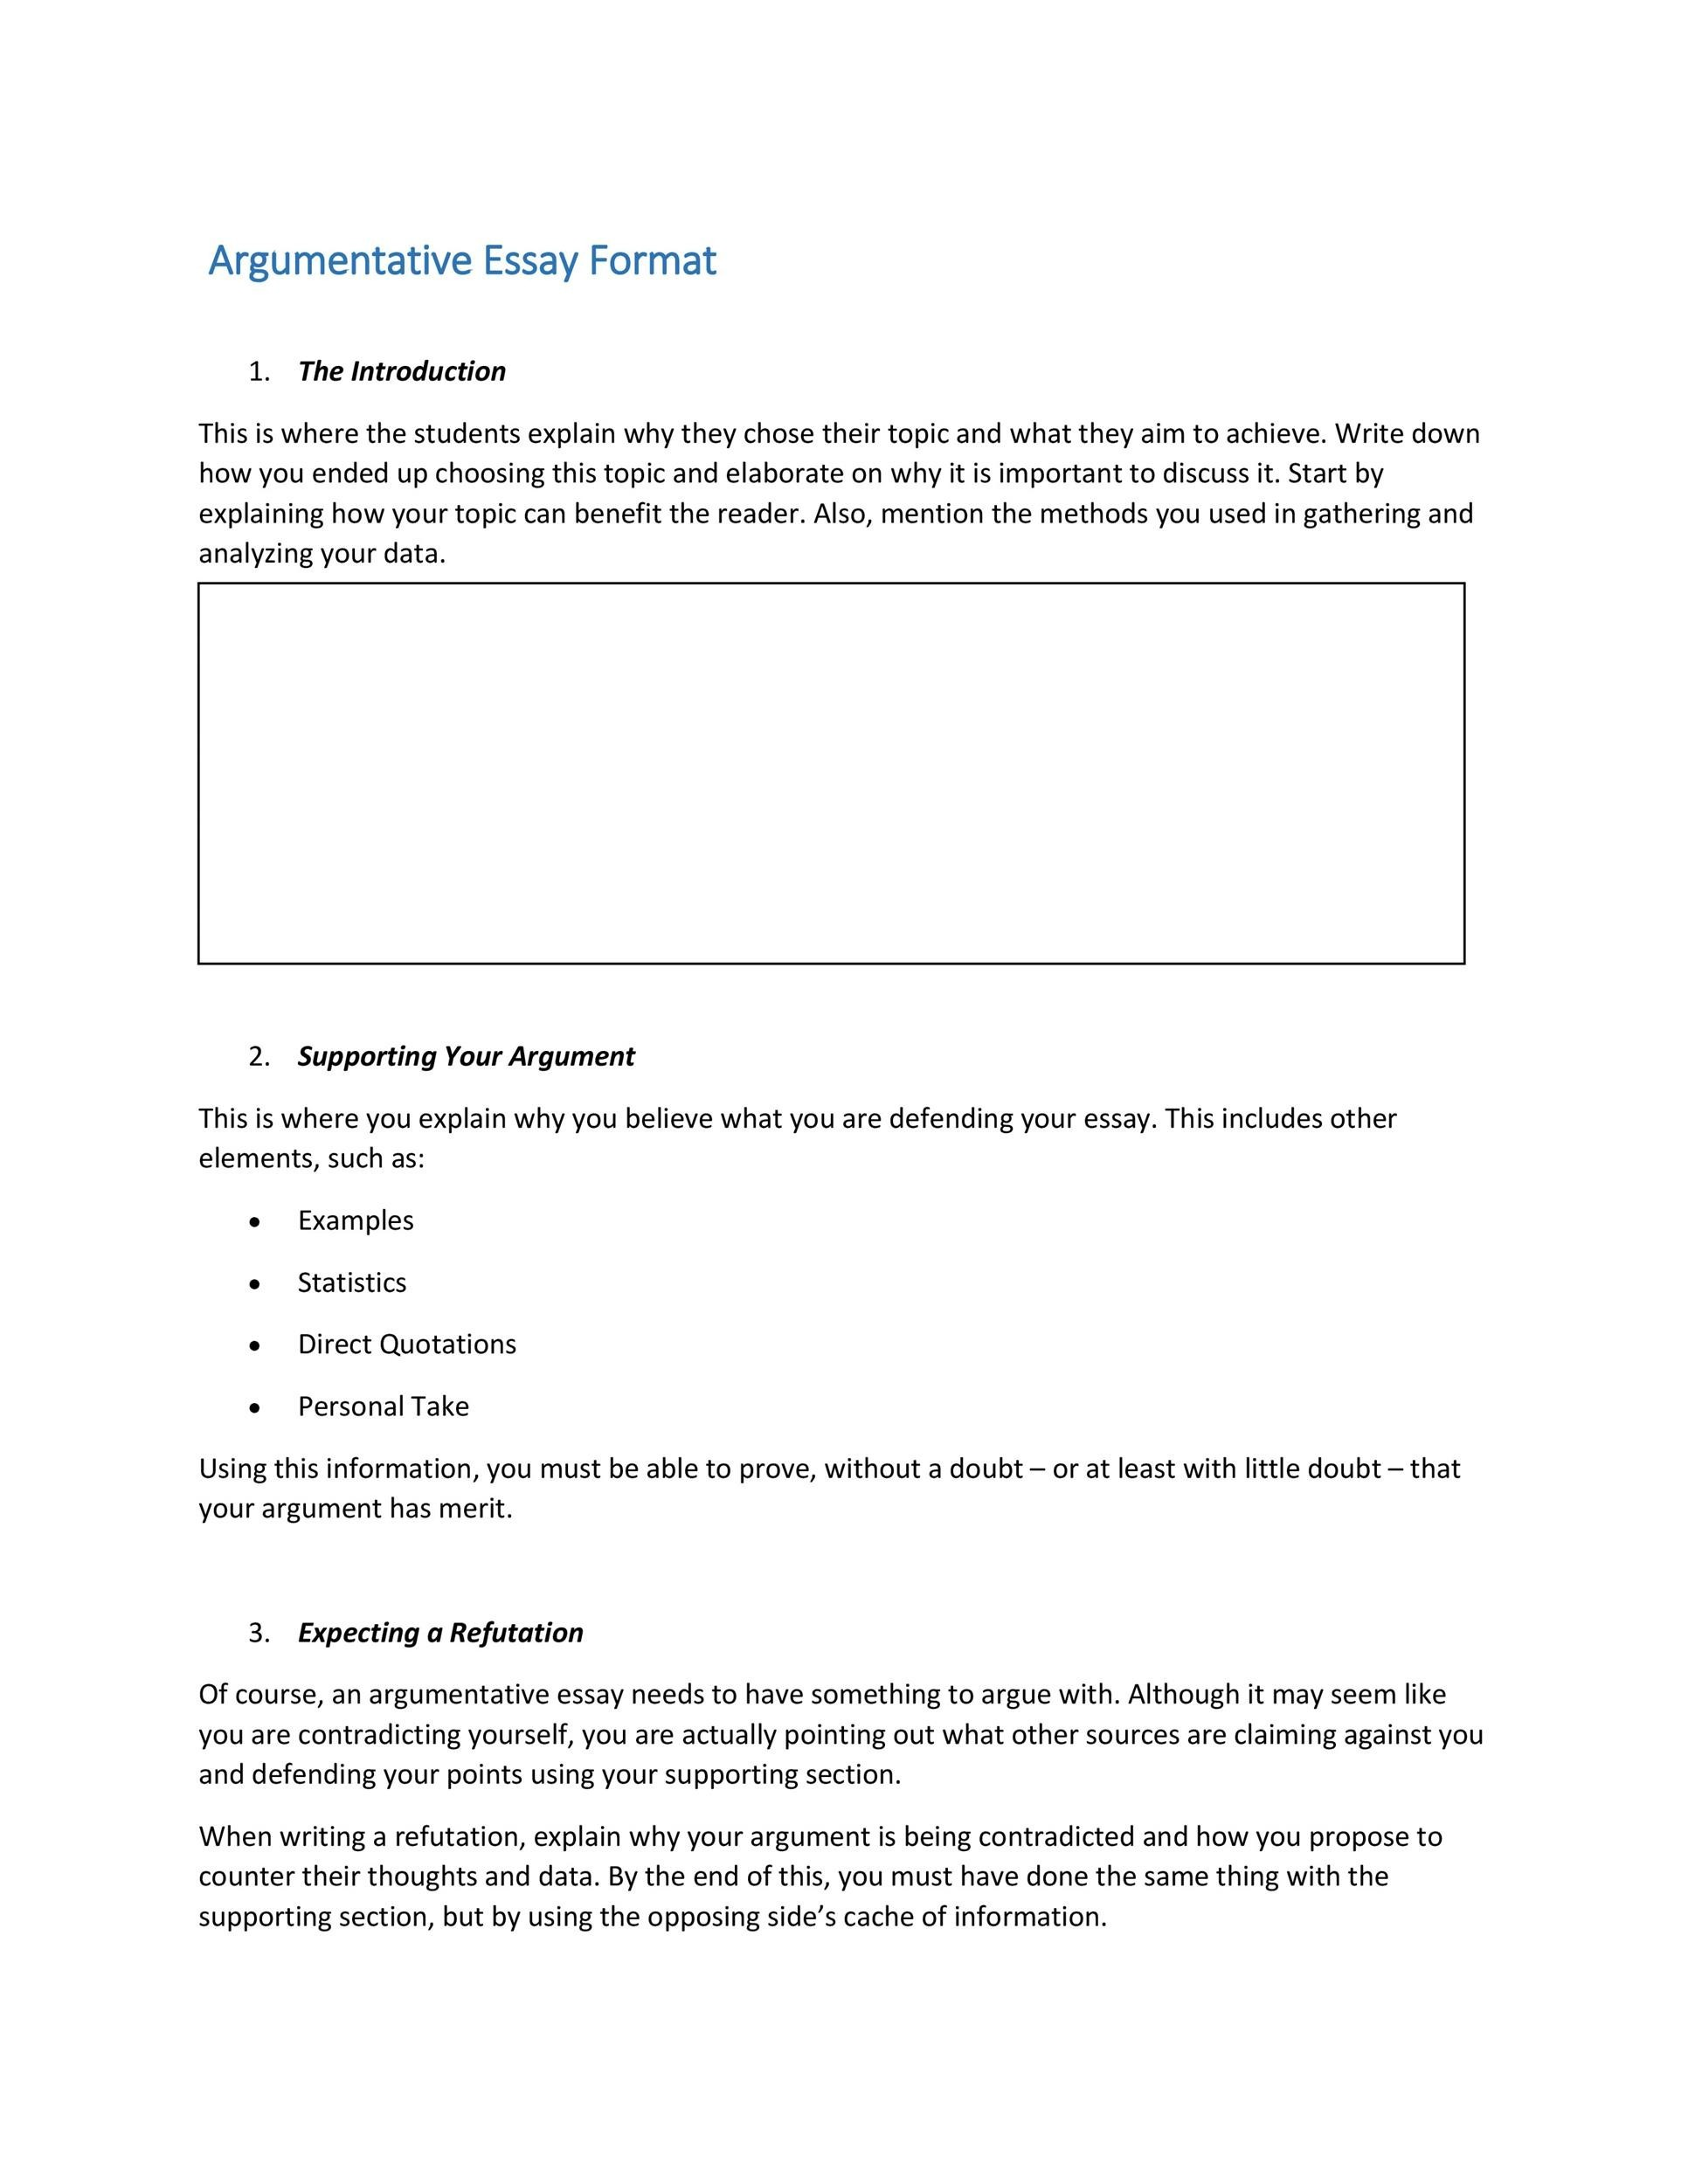 good introductory paragraph argumentative essay Putting together an argumentative essay outline is the perfect way to get started on your argumentative essay assignment—just fill in the your thesis typically makes up the last sentence of your intro paragraph if you're interested in learning more about argumentative essays.